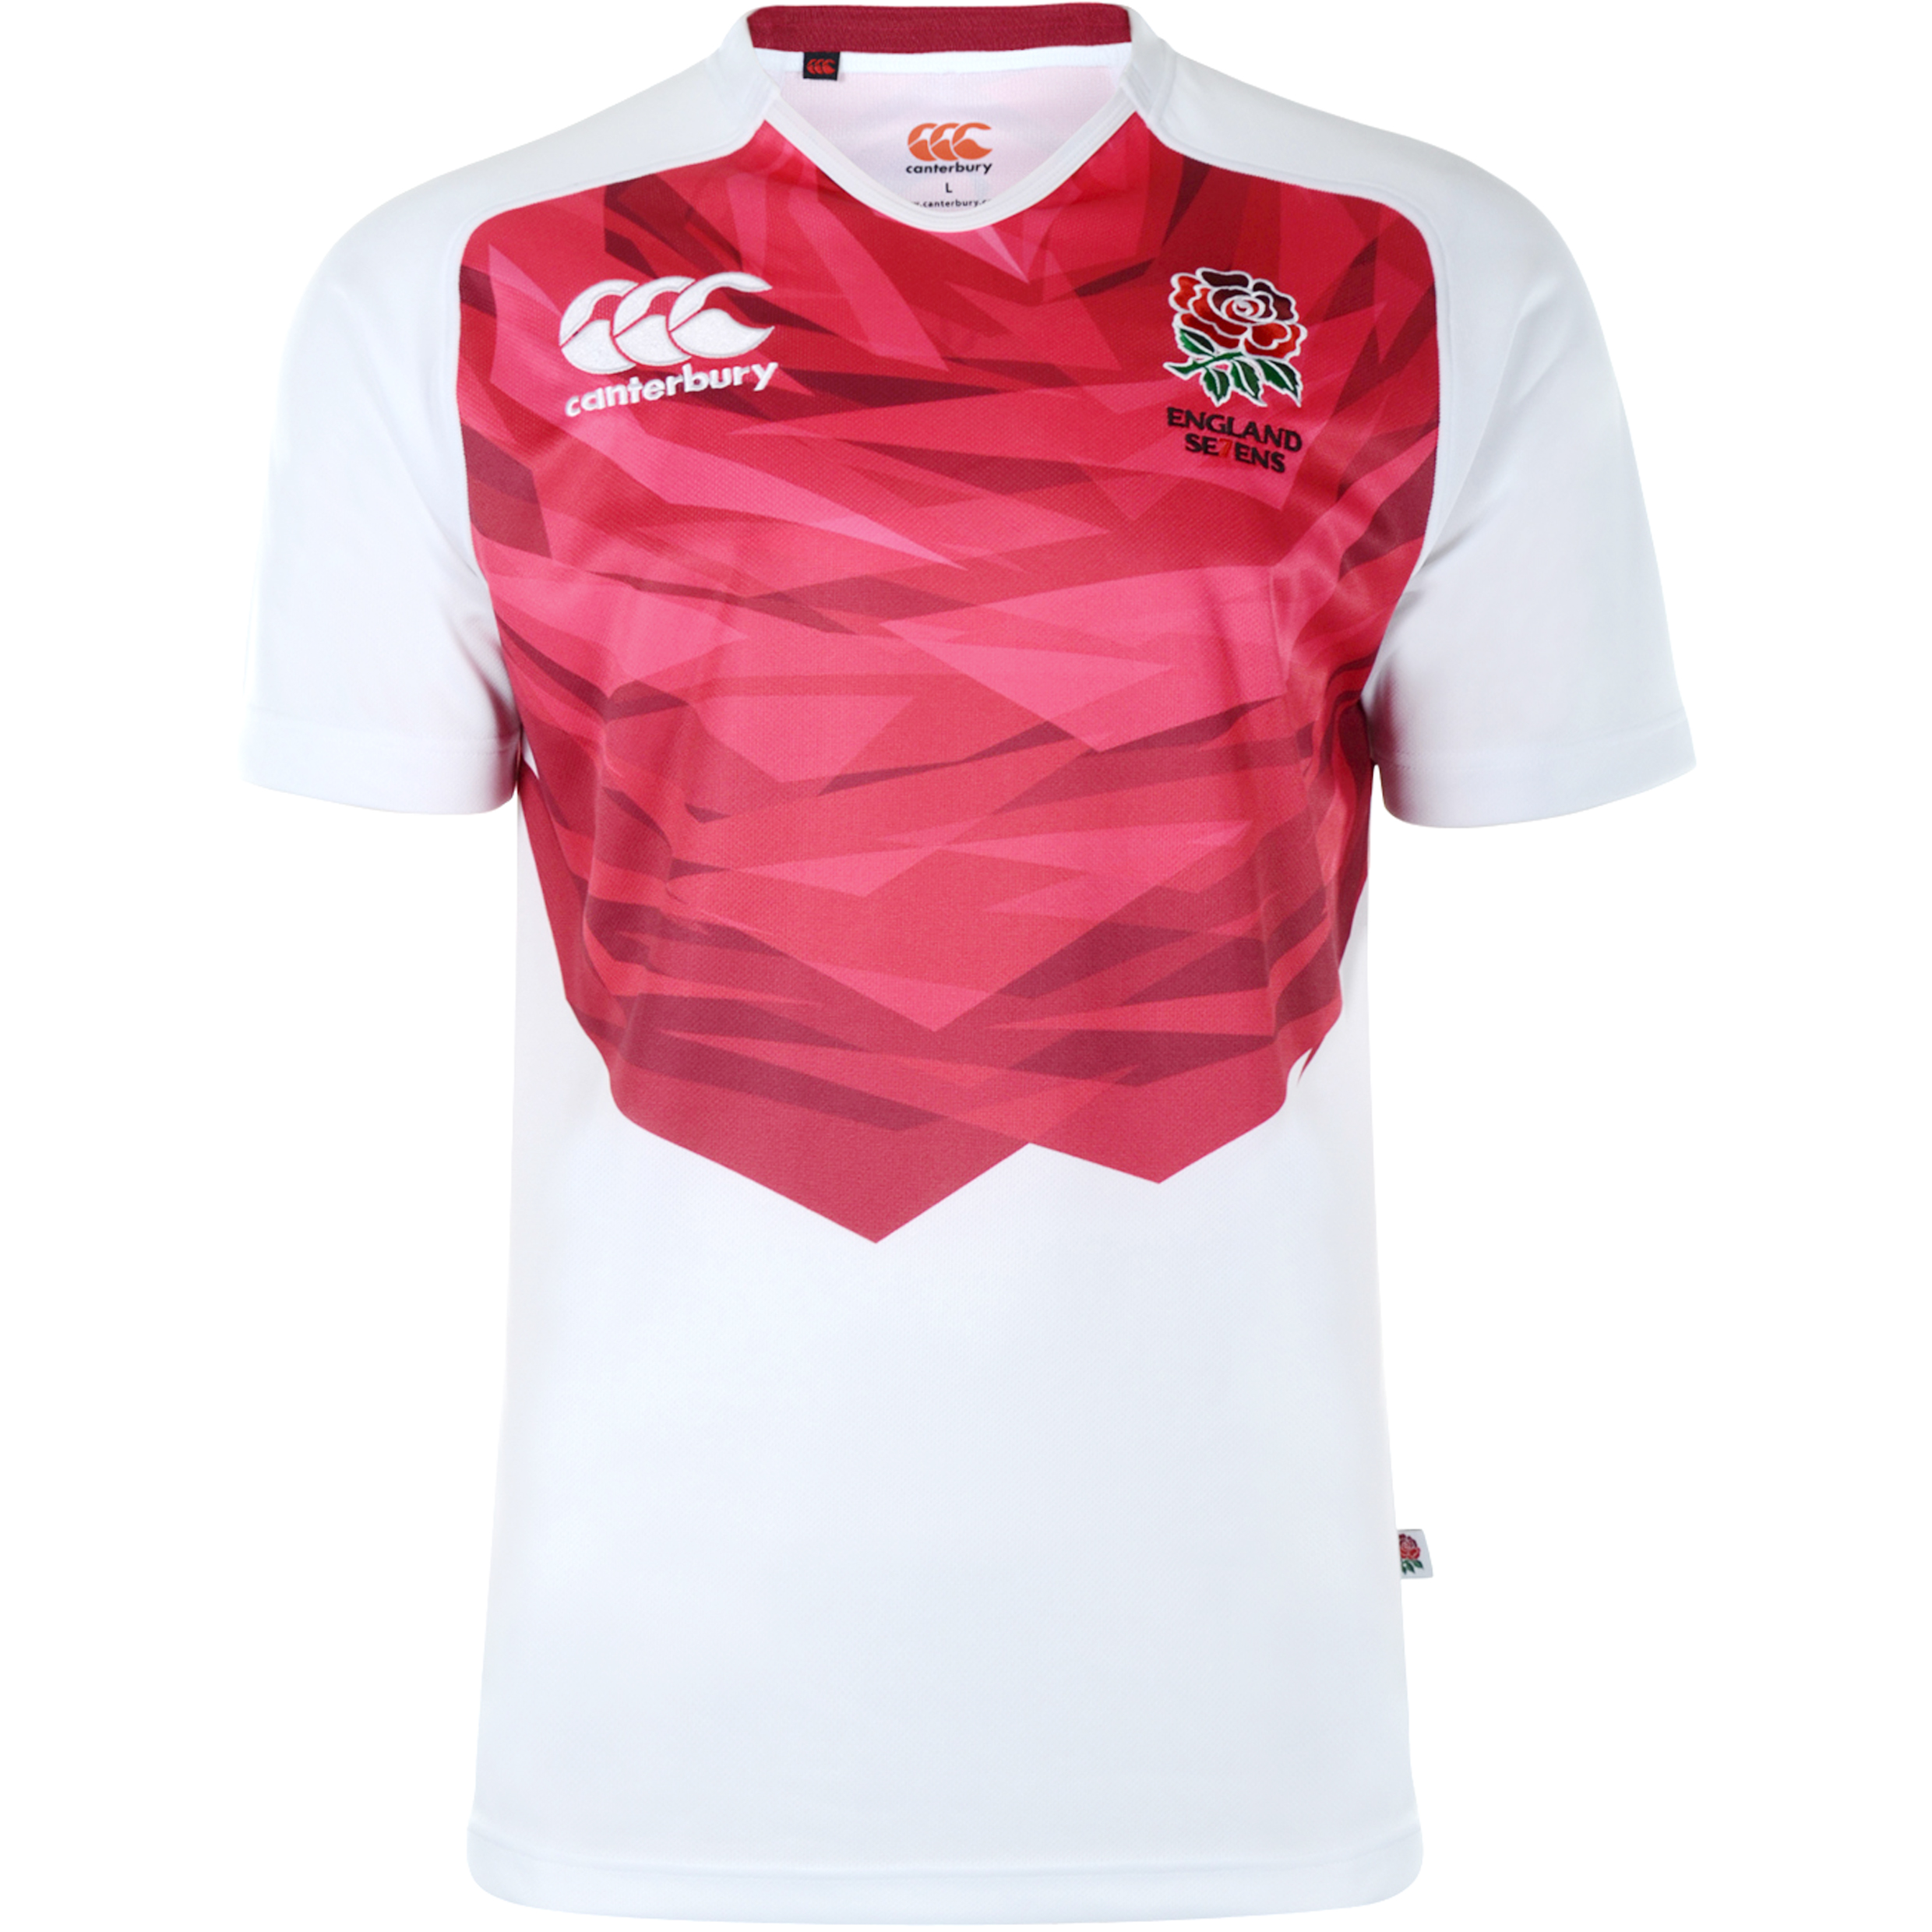 England Home 7inchS Rugby Pro Shirt 2012/13 S/S - Kids